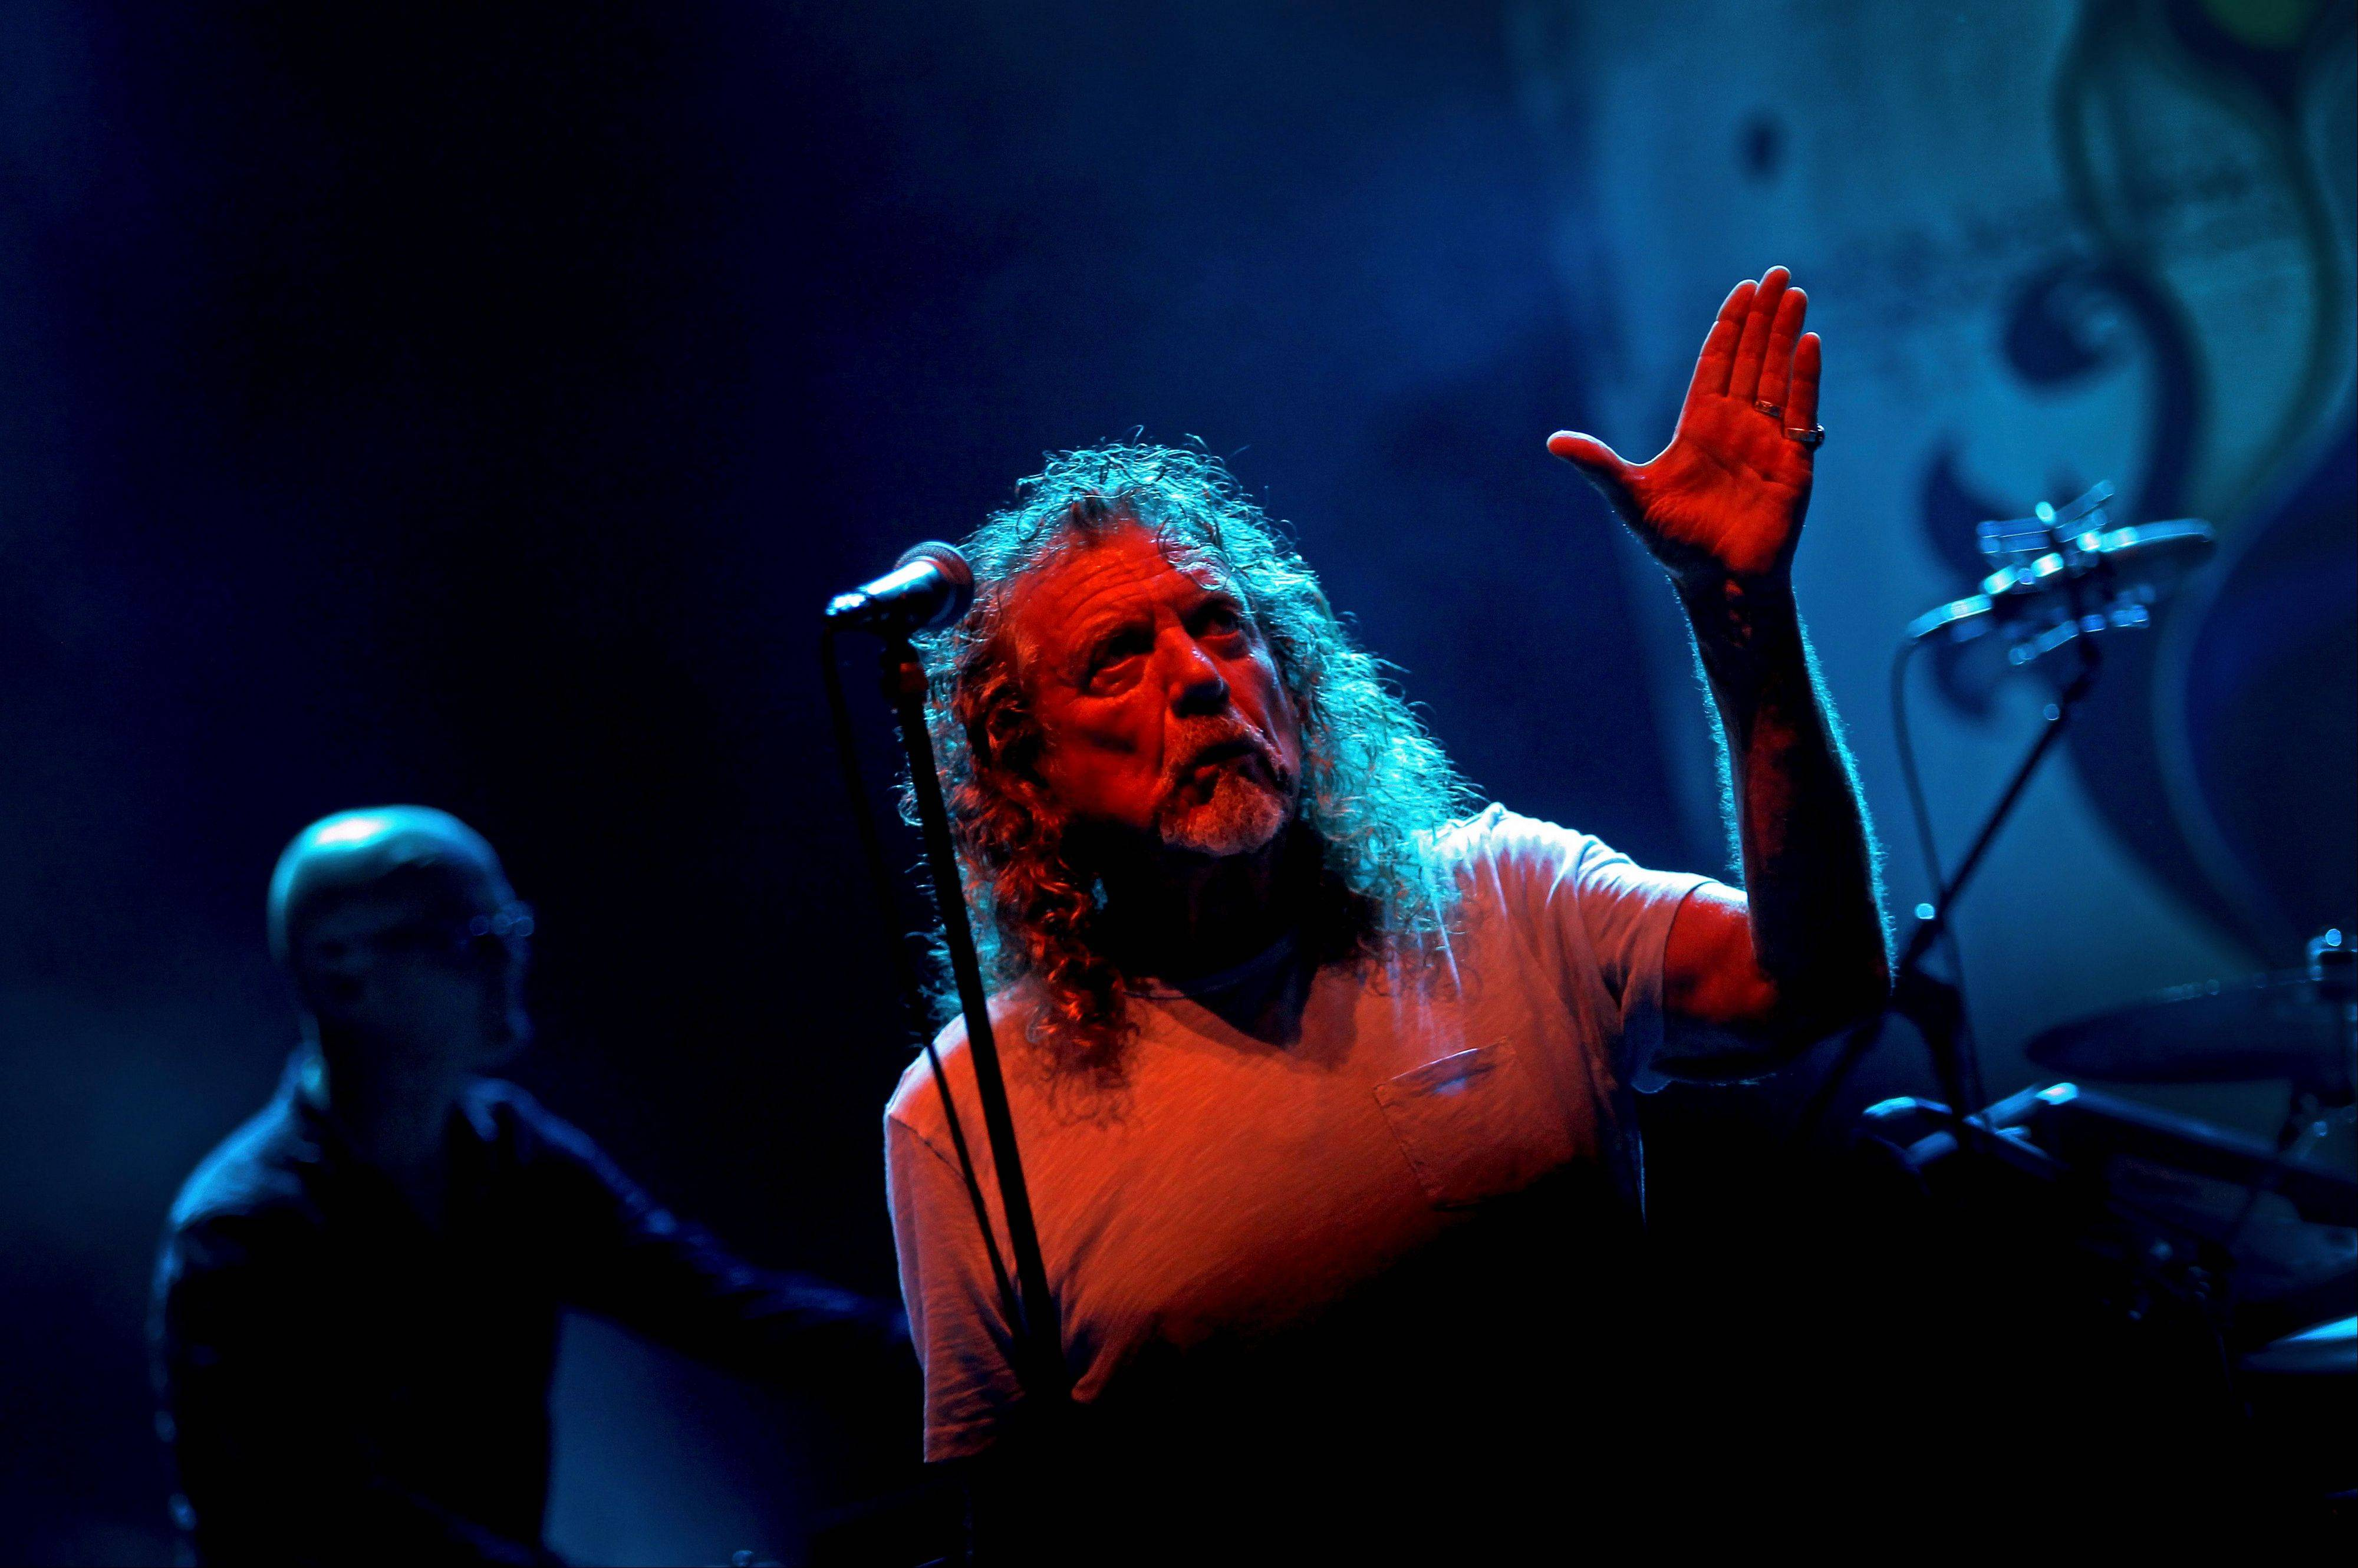 Robert Plant is on the road this summer with a new band, The Sensational Space Shifters. They headline the Petrillo Music Shell in Chicago on Friday, July 12.